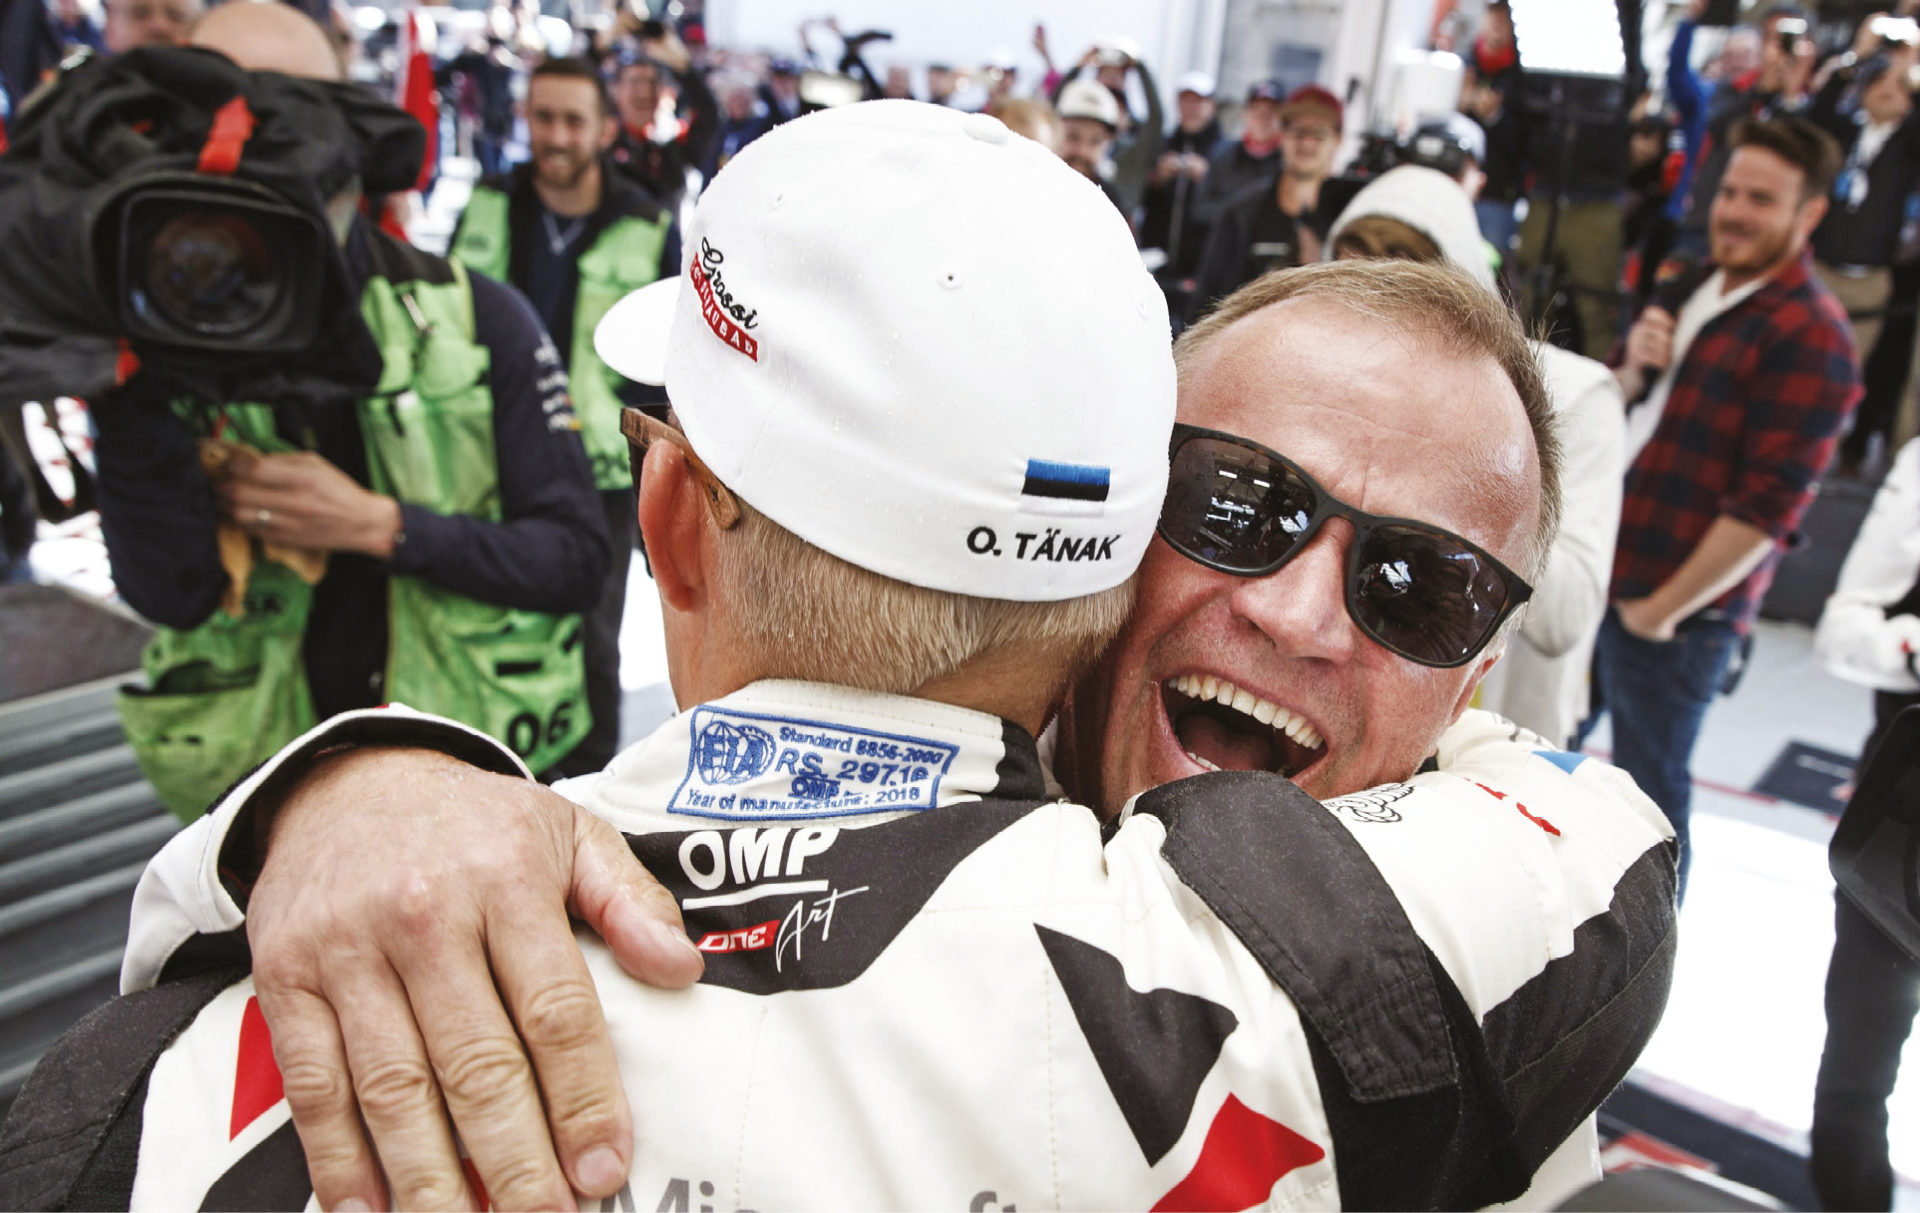 Ott Tänak secured this year's WRC title for Tommi's Toyota crew